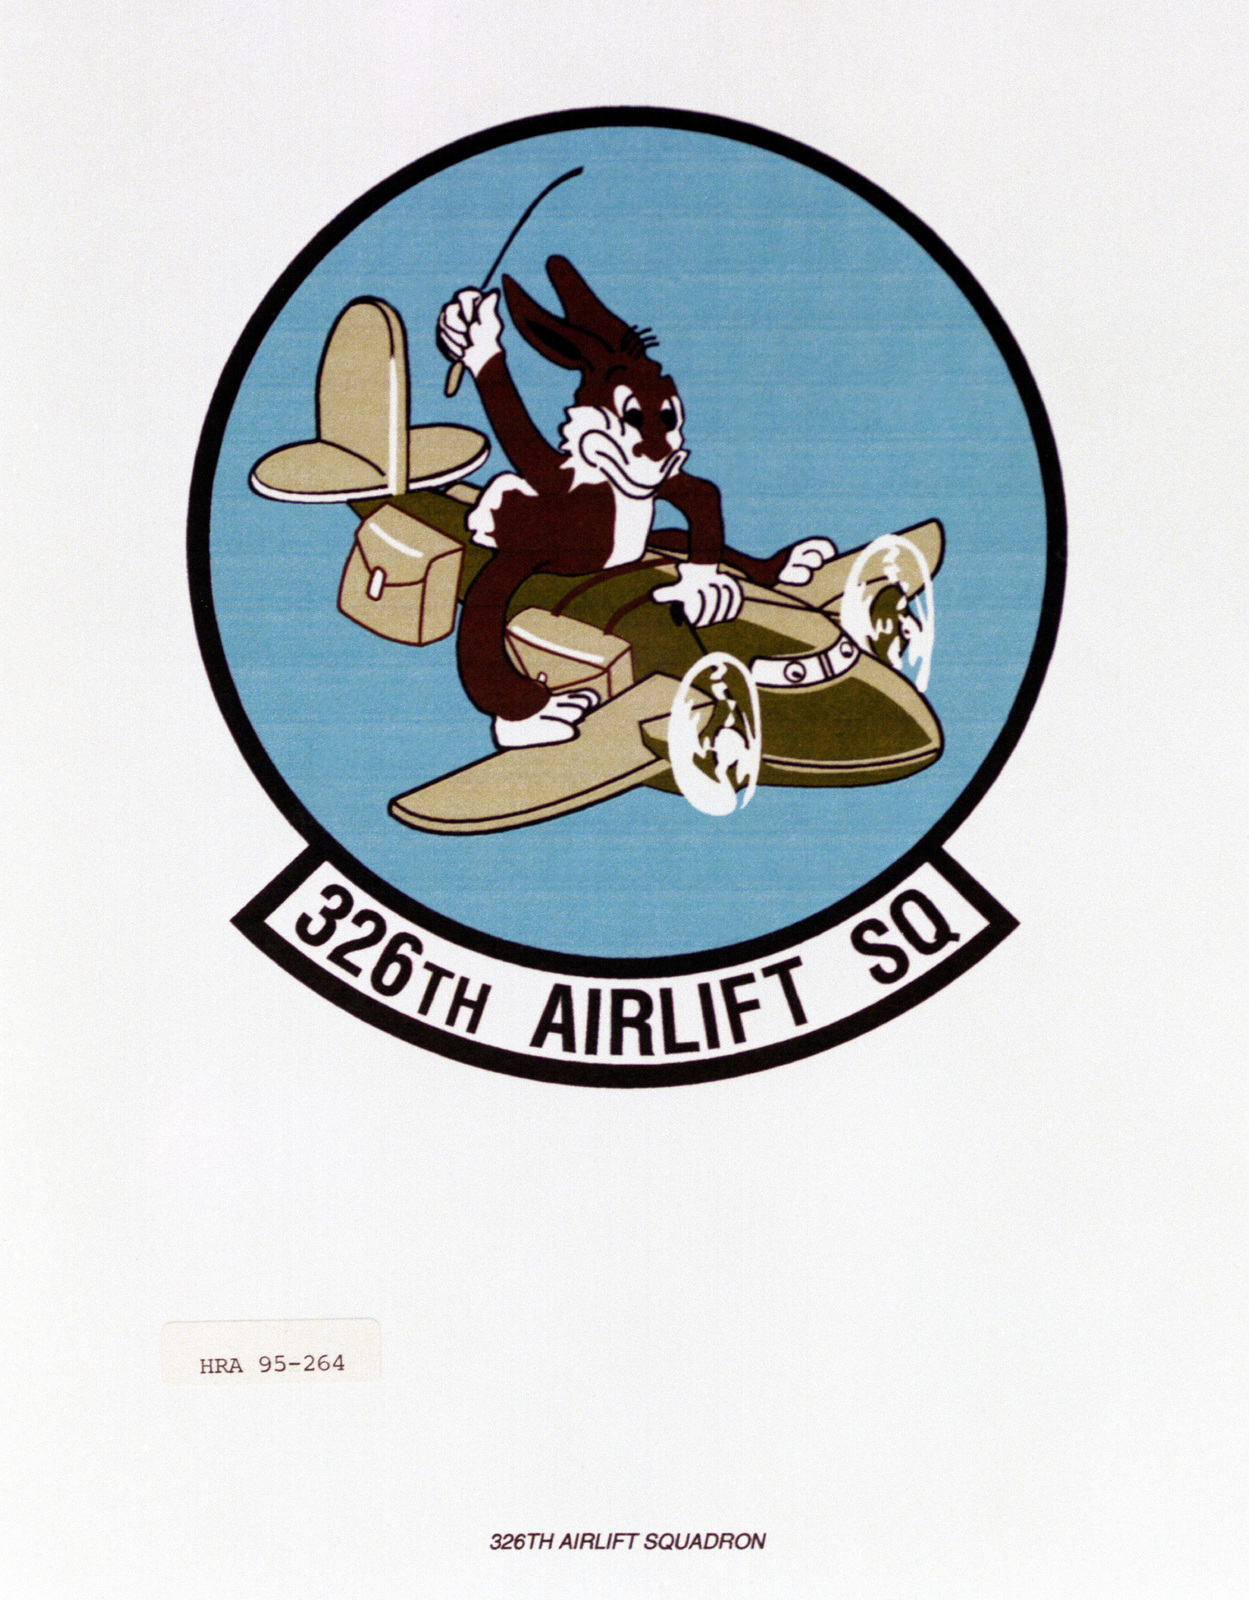 Approved insignia for the 326th Air Lift Squadron Exact date Shot Unknown